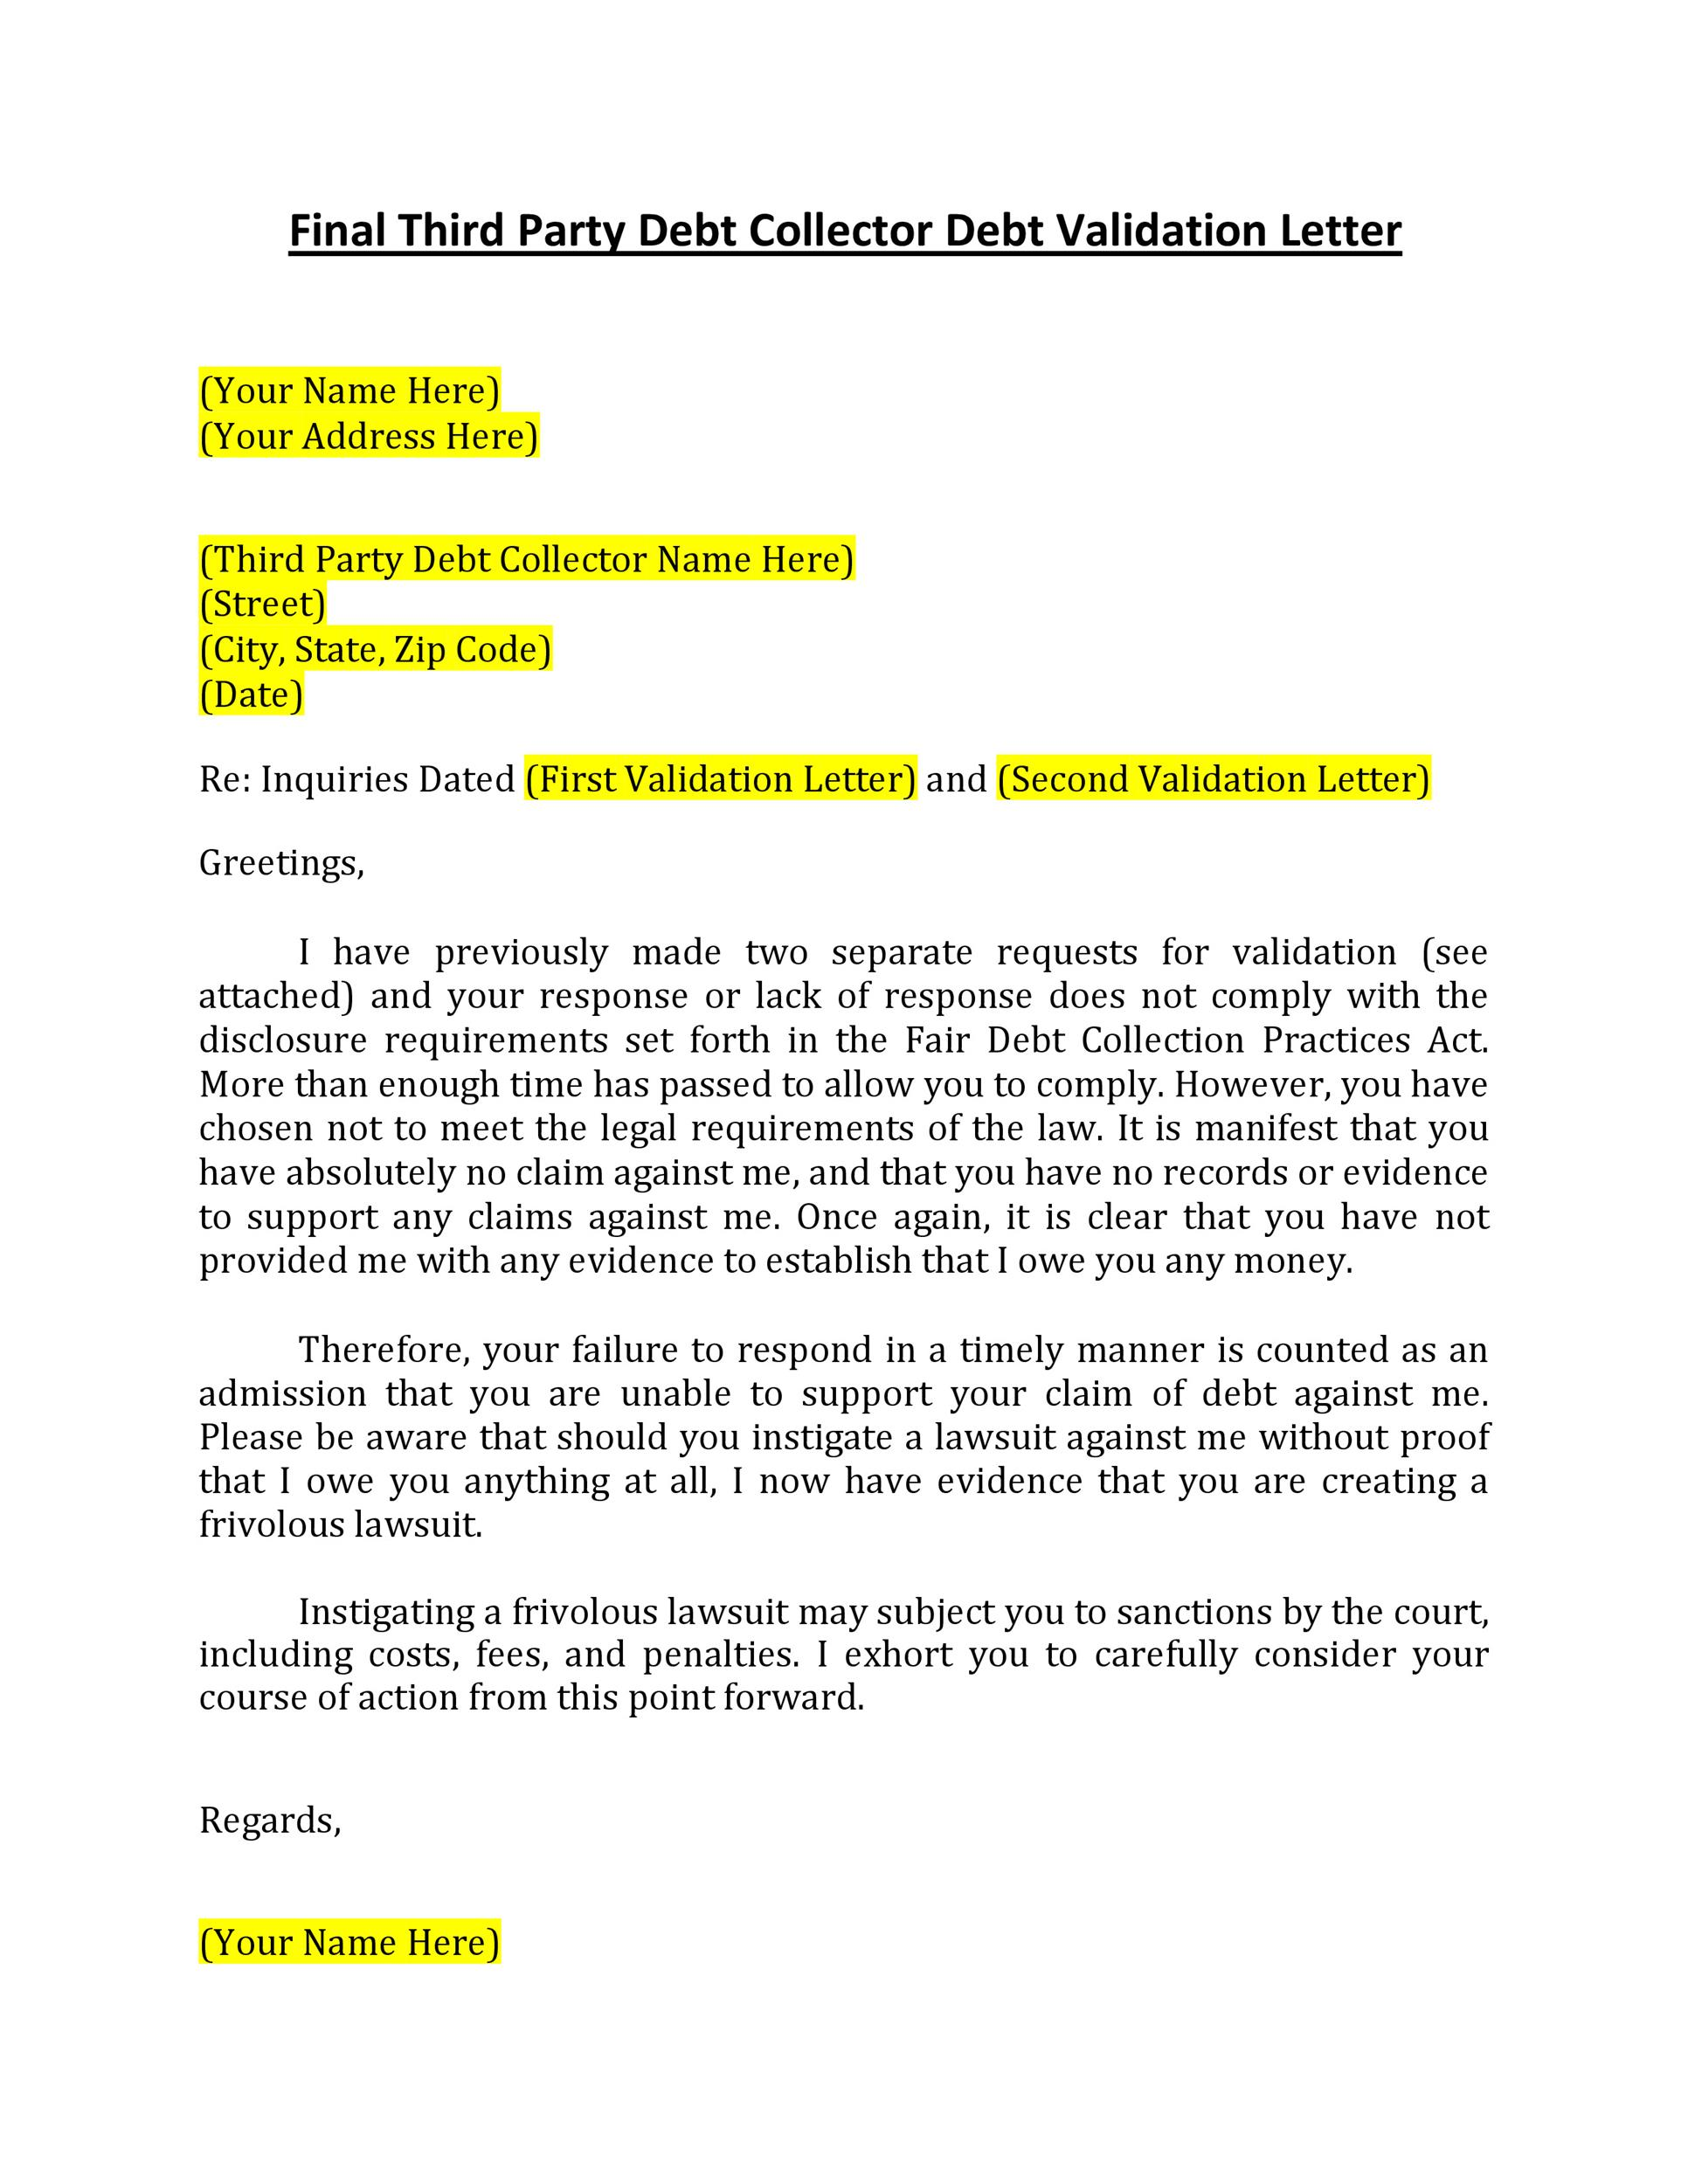 Free debt validation letter 15